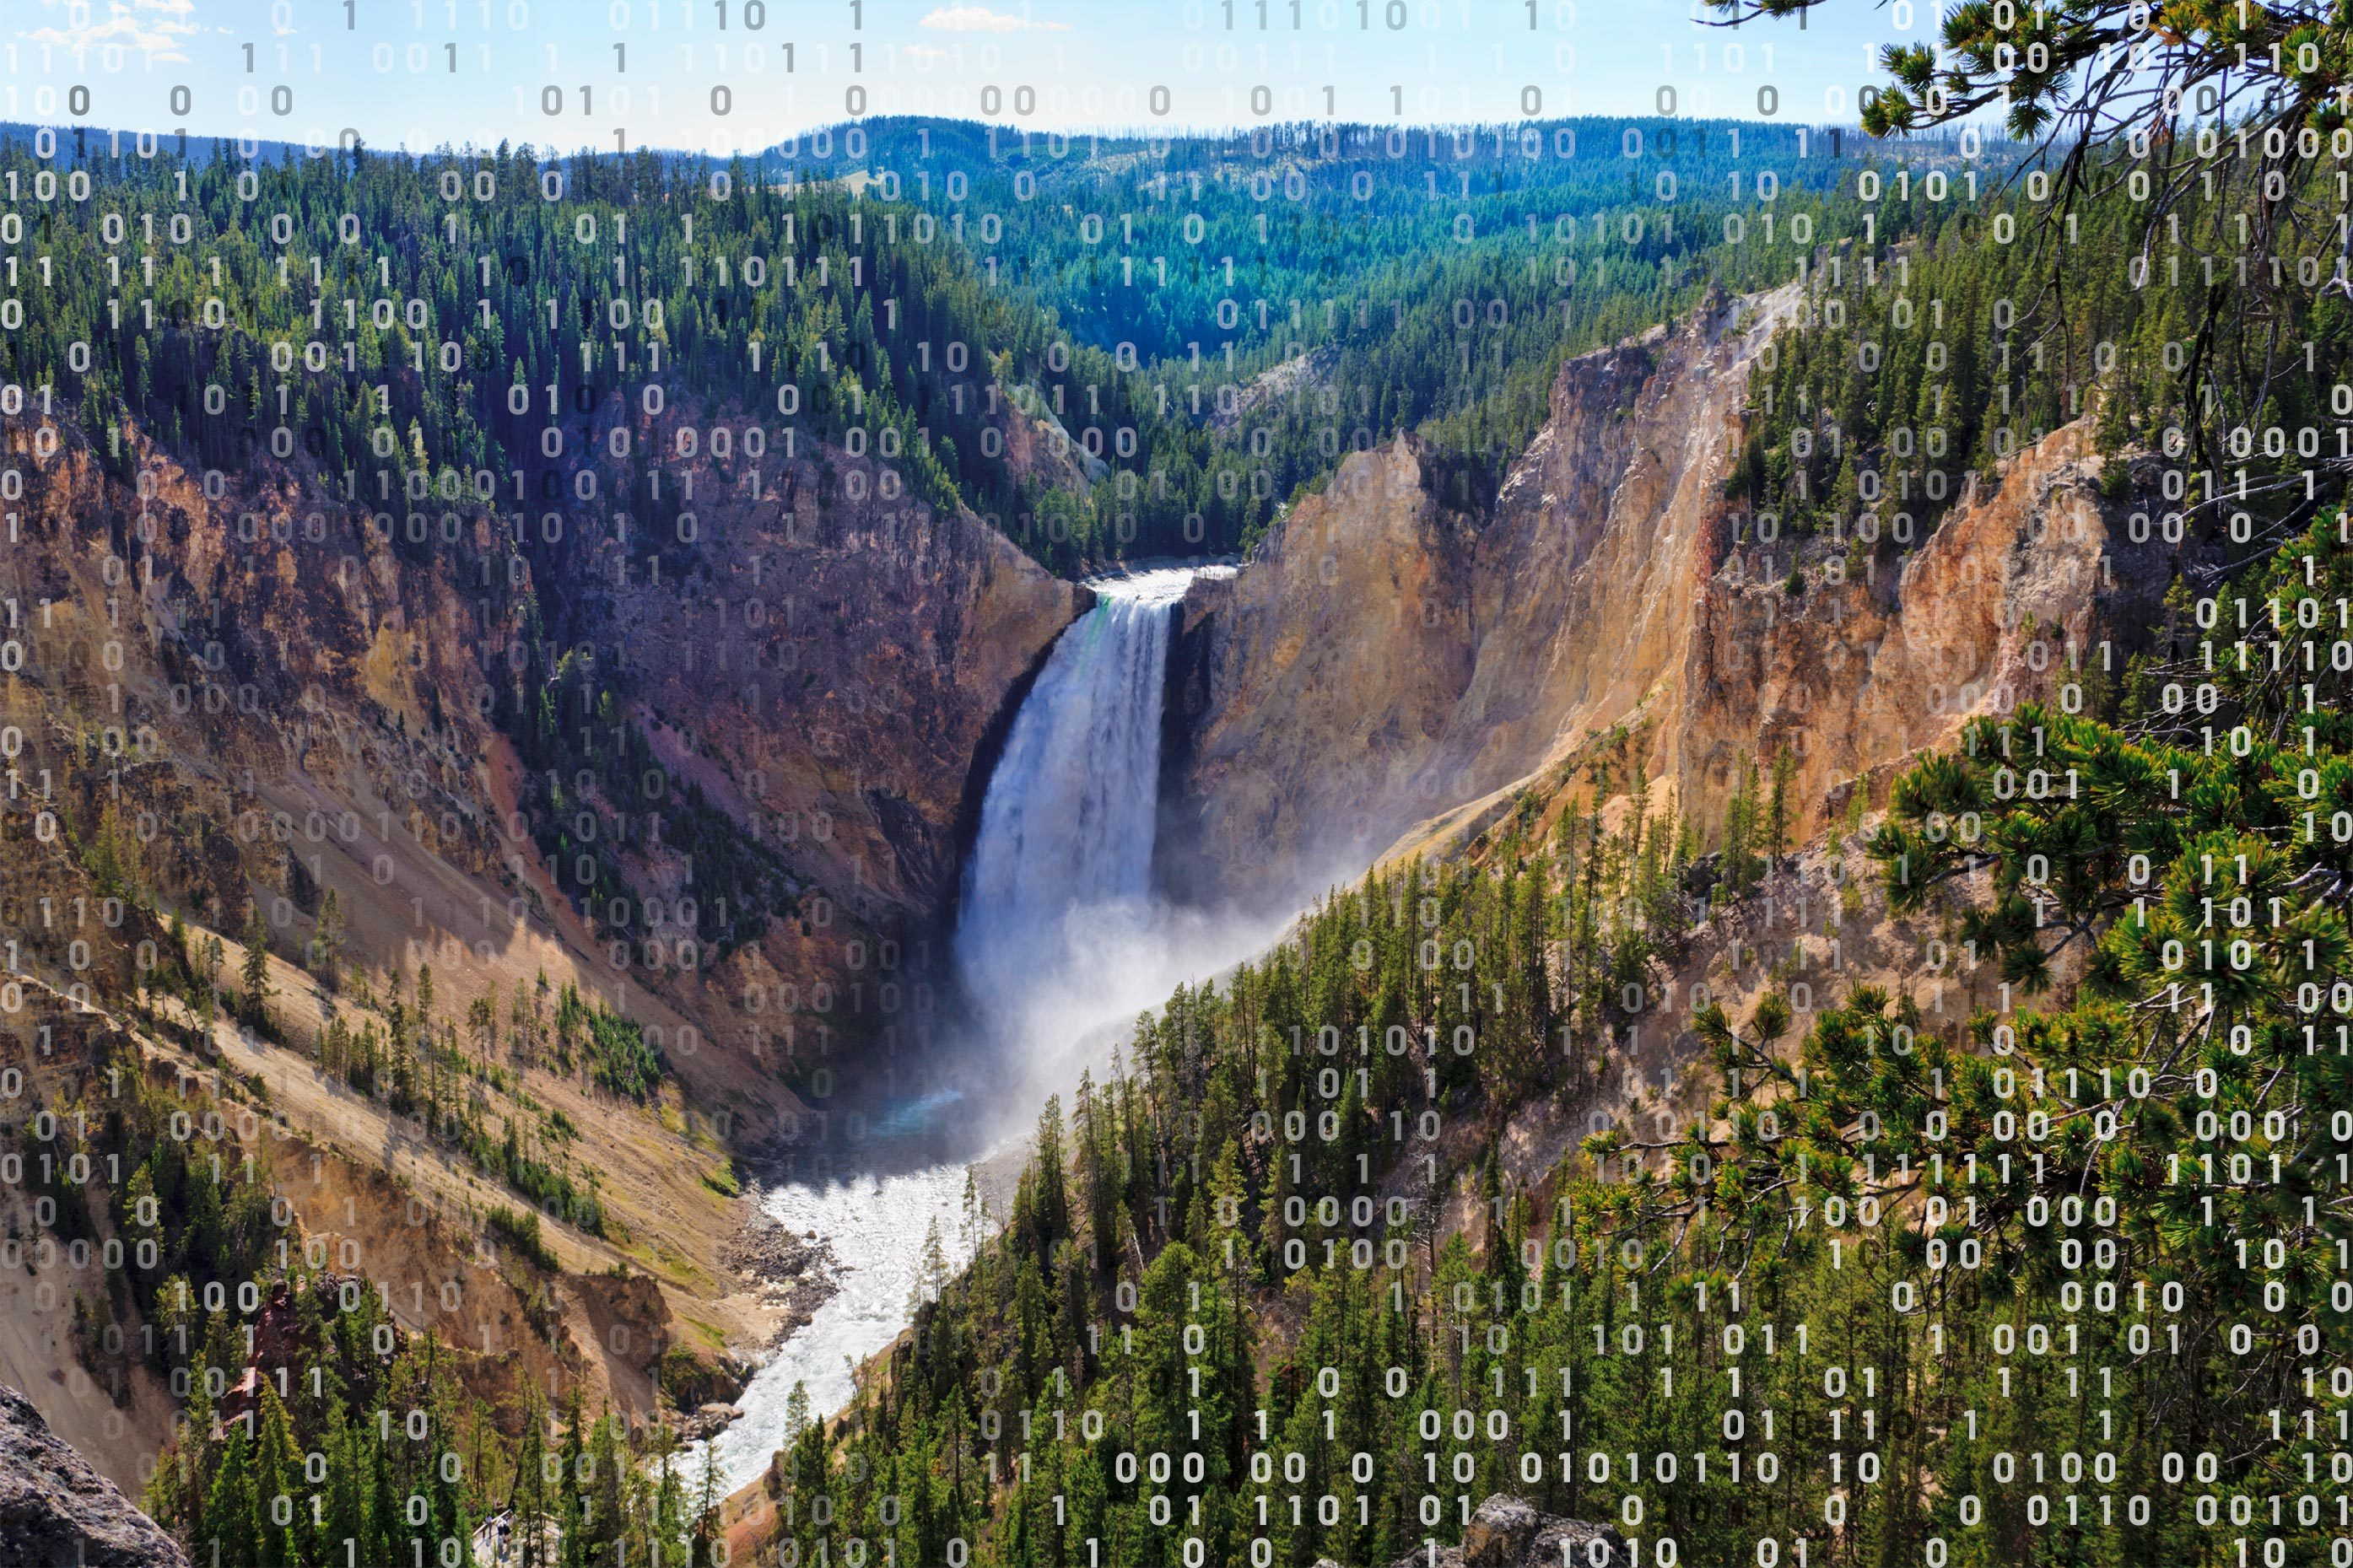 yellowstone grand canyon waterfall with computer code overlay